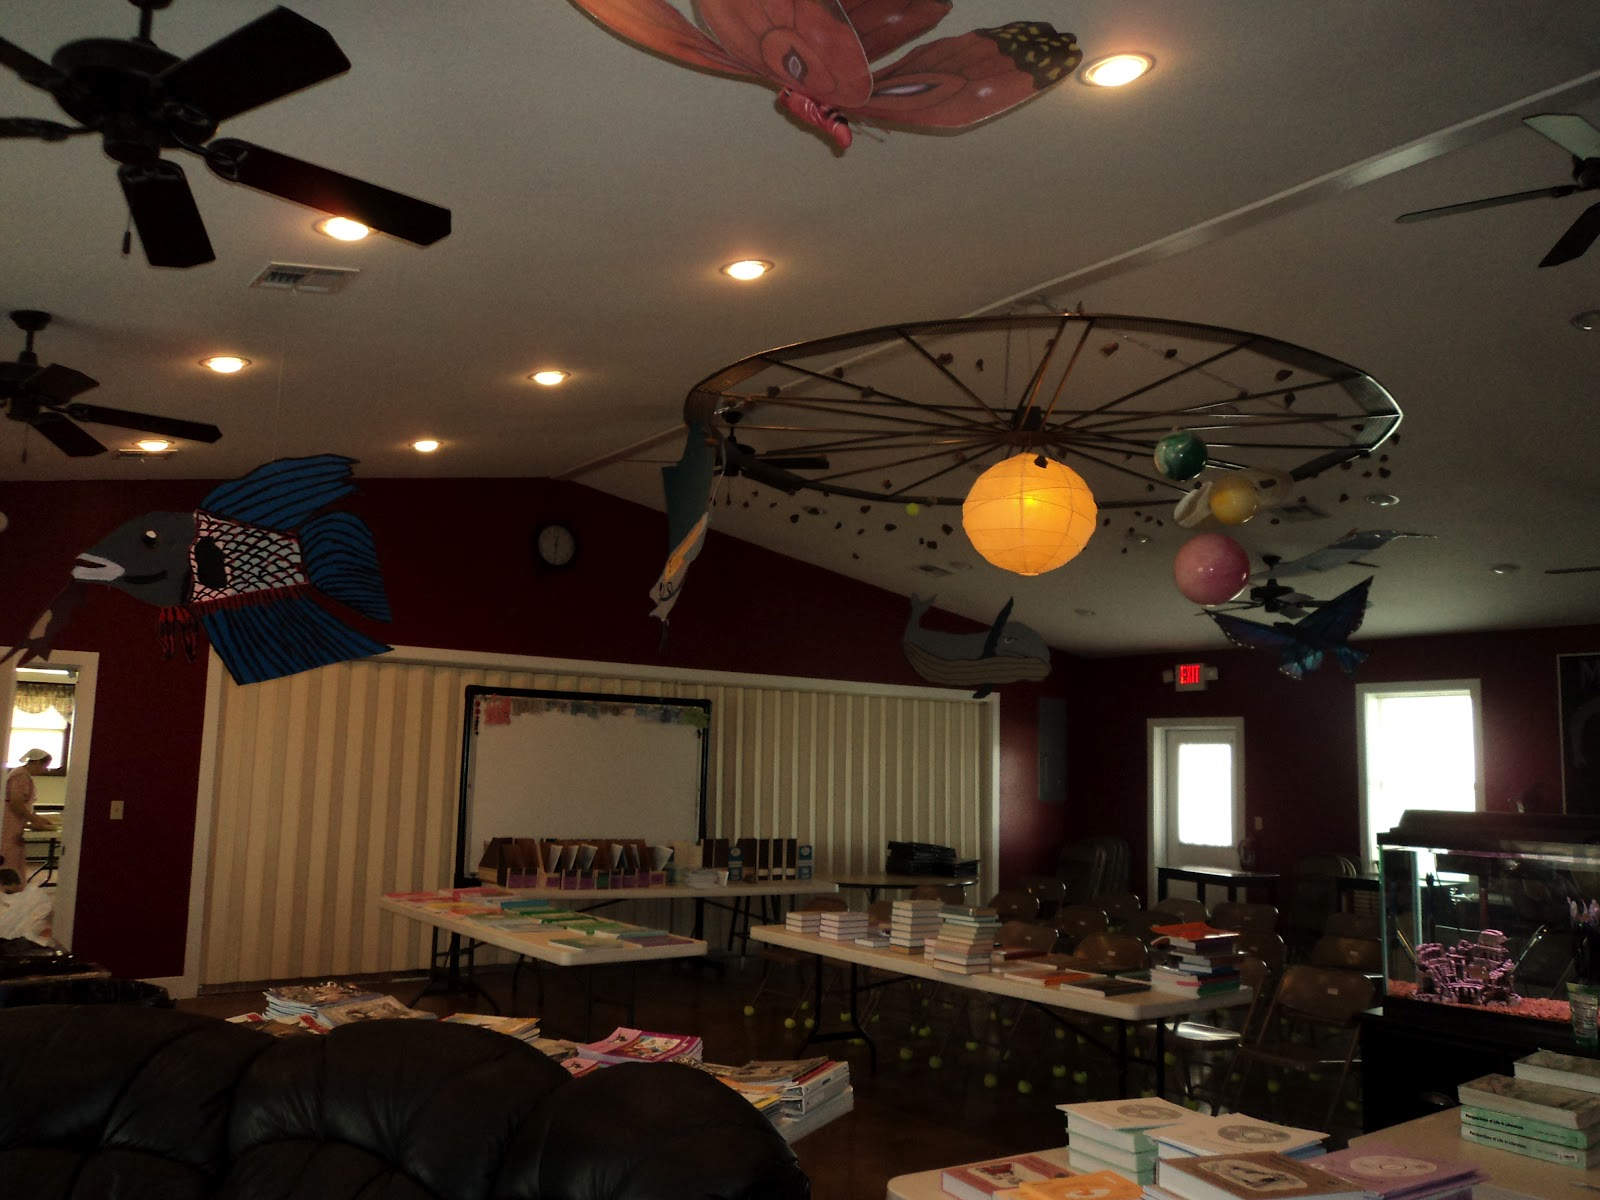 Classroom Ceiling Design ~ The plain professors ideas for decorating your classroom